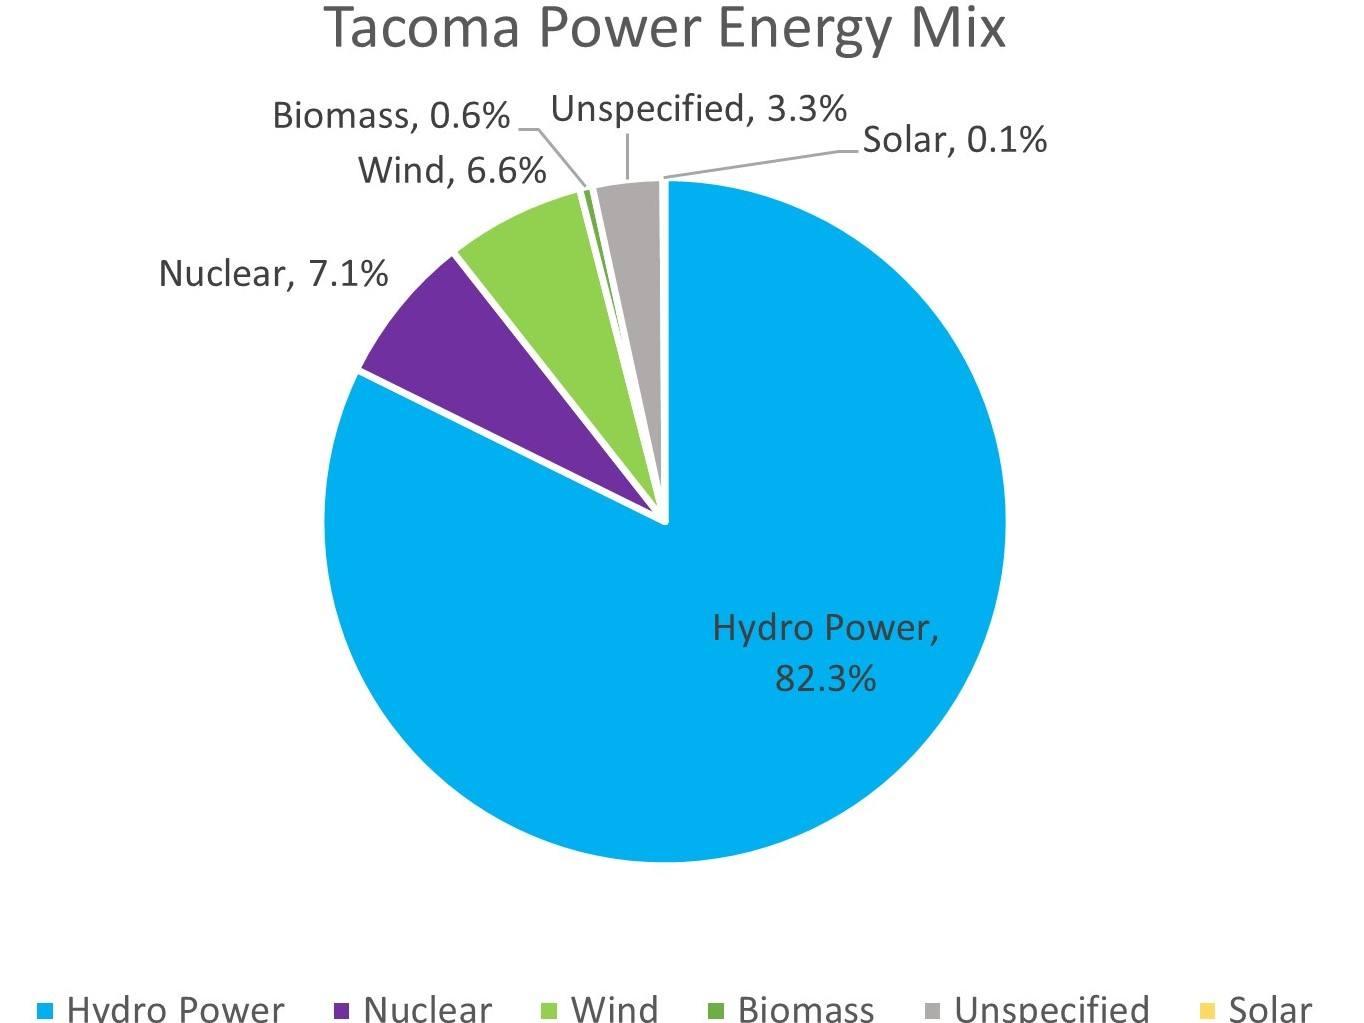 Pie chart of Tacoma power mix. 82.3% Hydro power, 7.1% Nuclear, 6.6% Wind, 0.6% Biomass, Unspecified 3.3%, and 0.1% Solar.